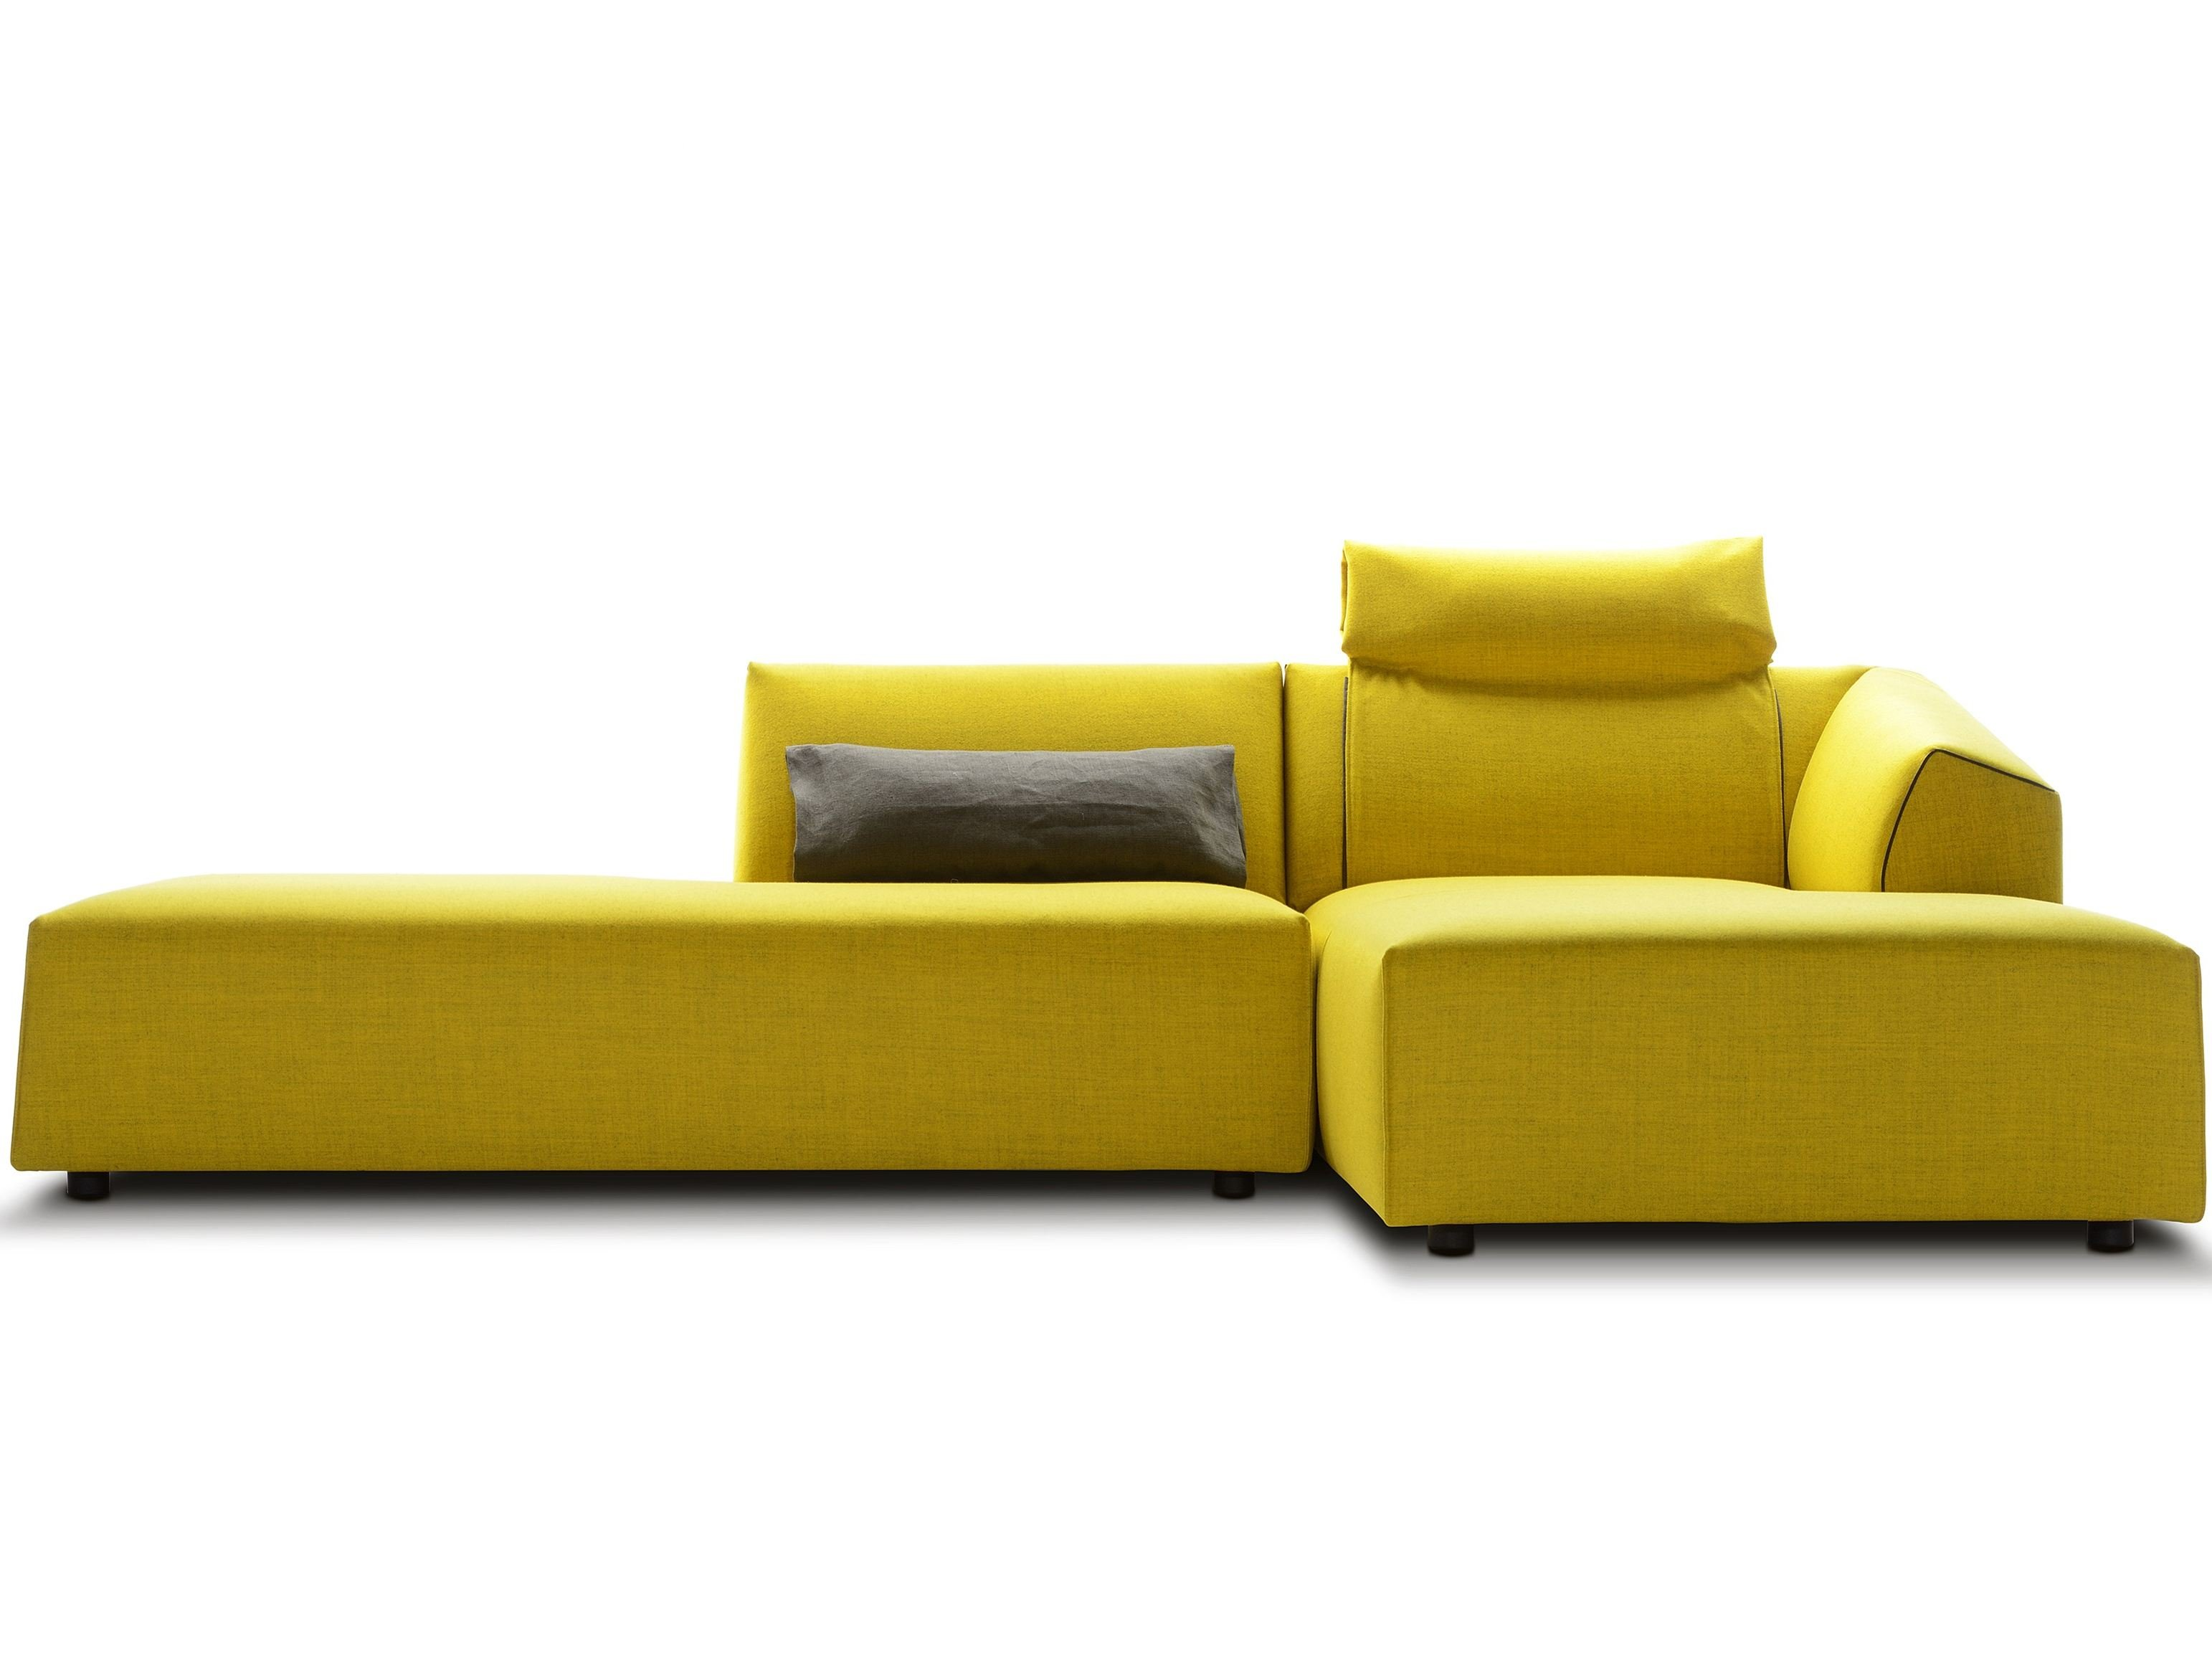 Thea sofa with chaise longue by mdf italia design lina for Chaise longue furniture